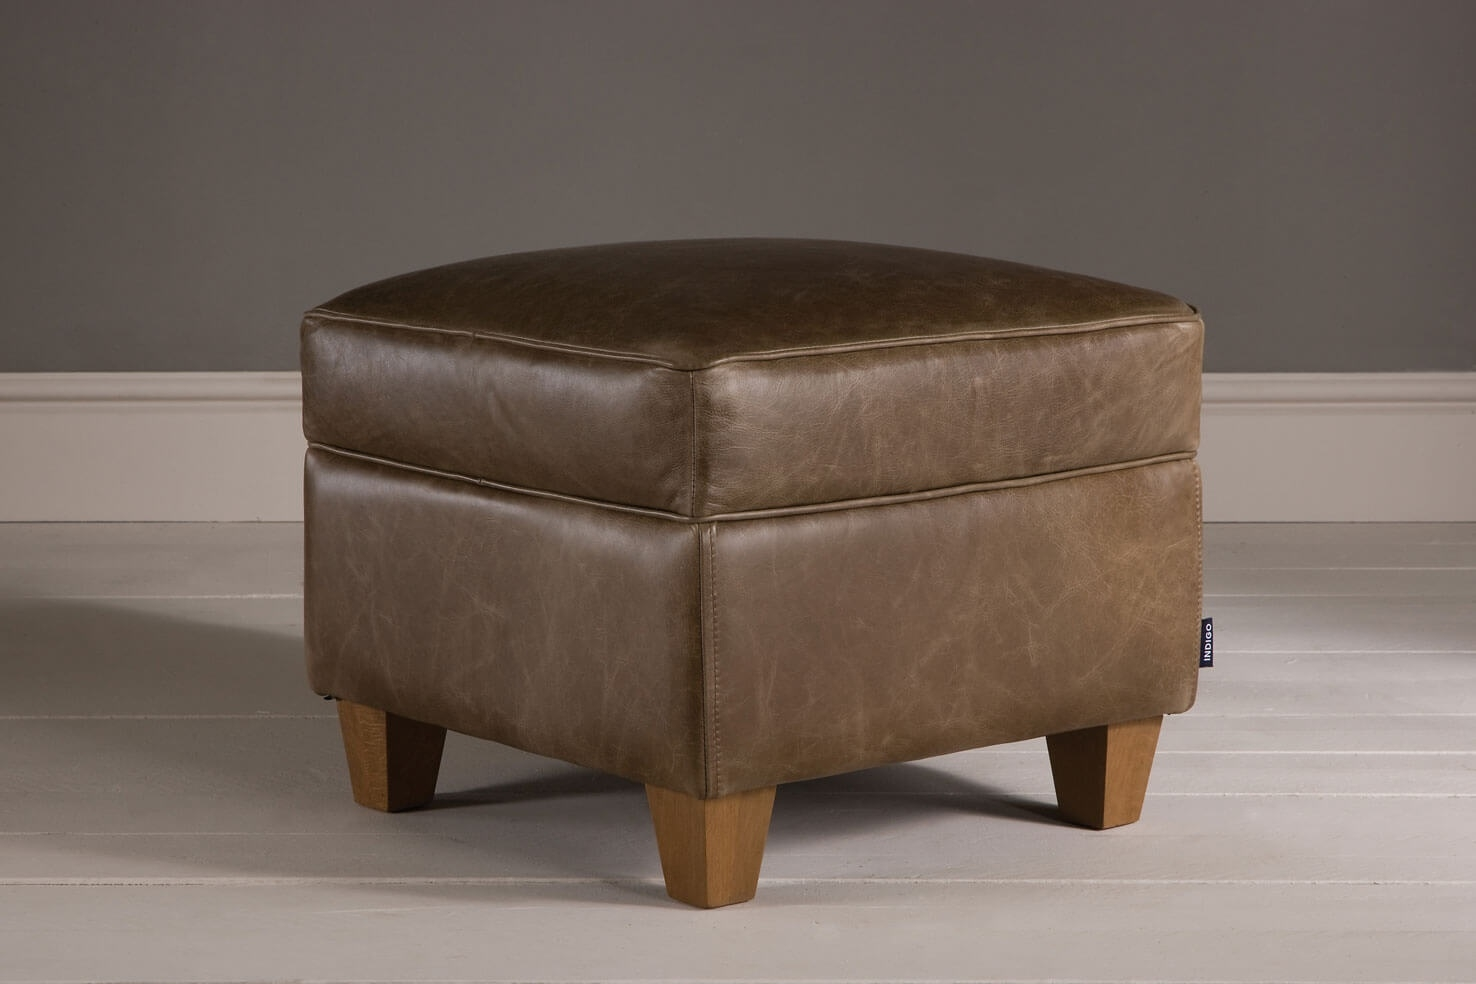 The Vintage Leather Footstool Indigo Furniture With Regard To Leather Footstools (Image 13 of 15)